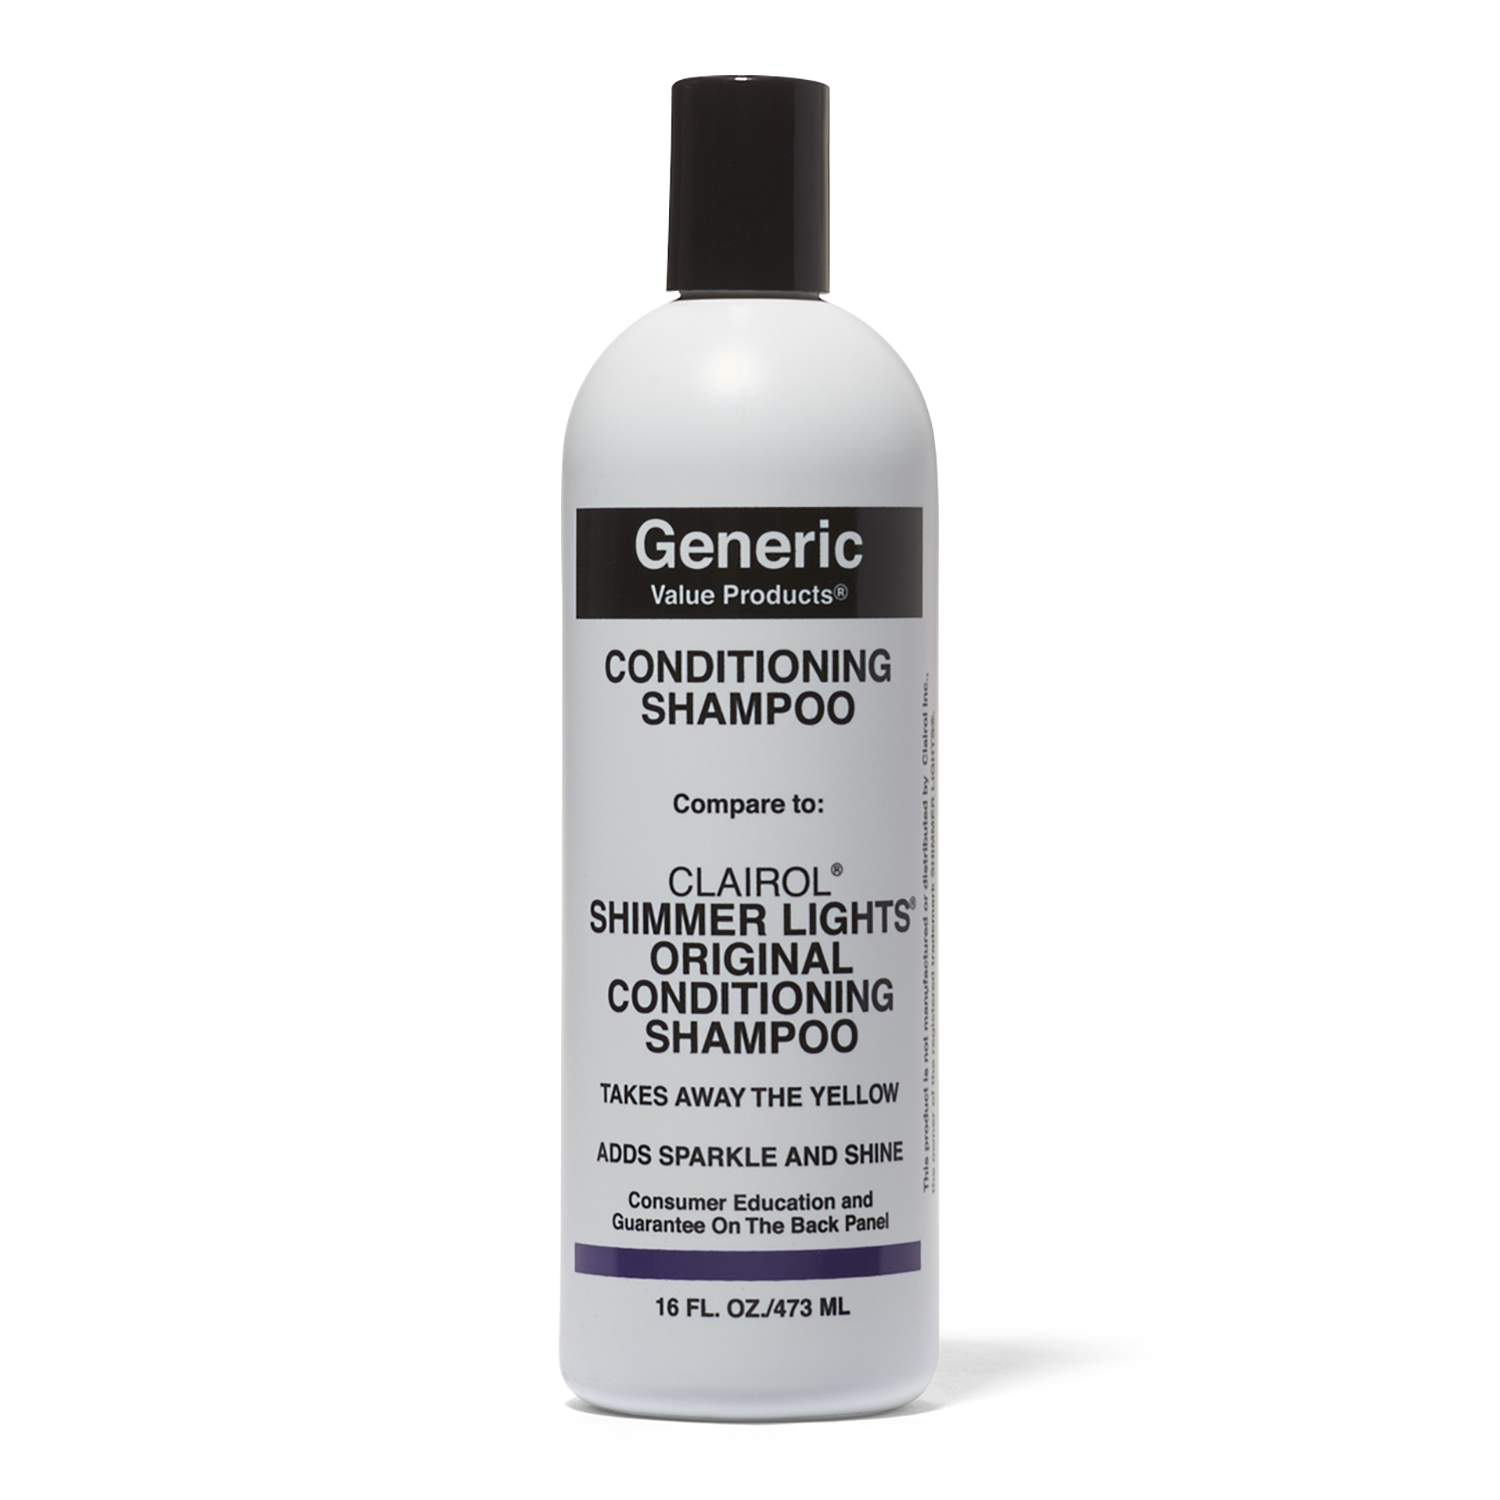 Generic Value Products Conditioning Shampoo Compare To Clairol